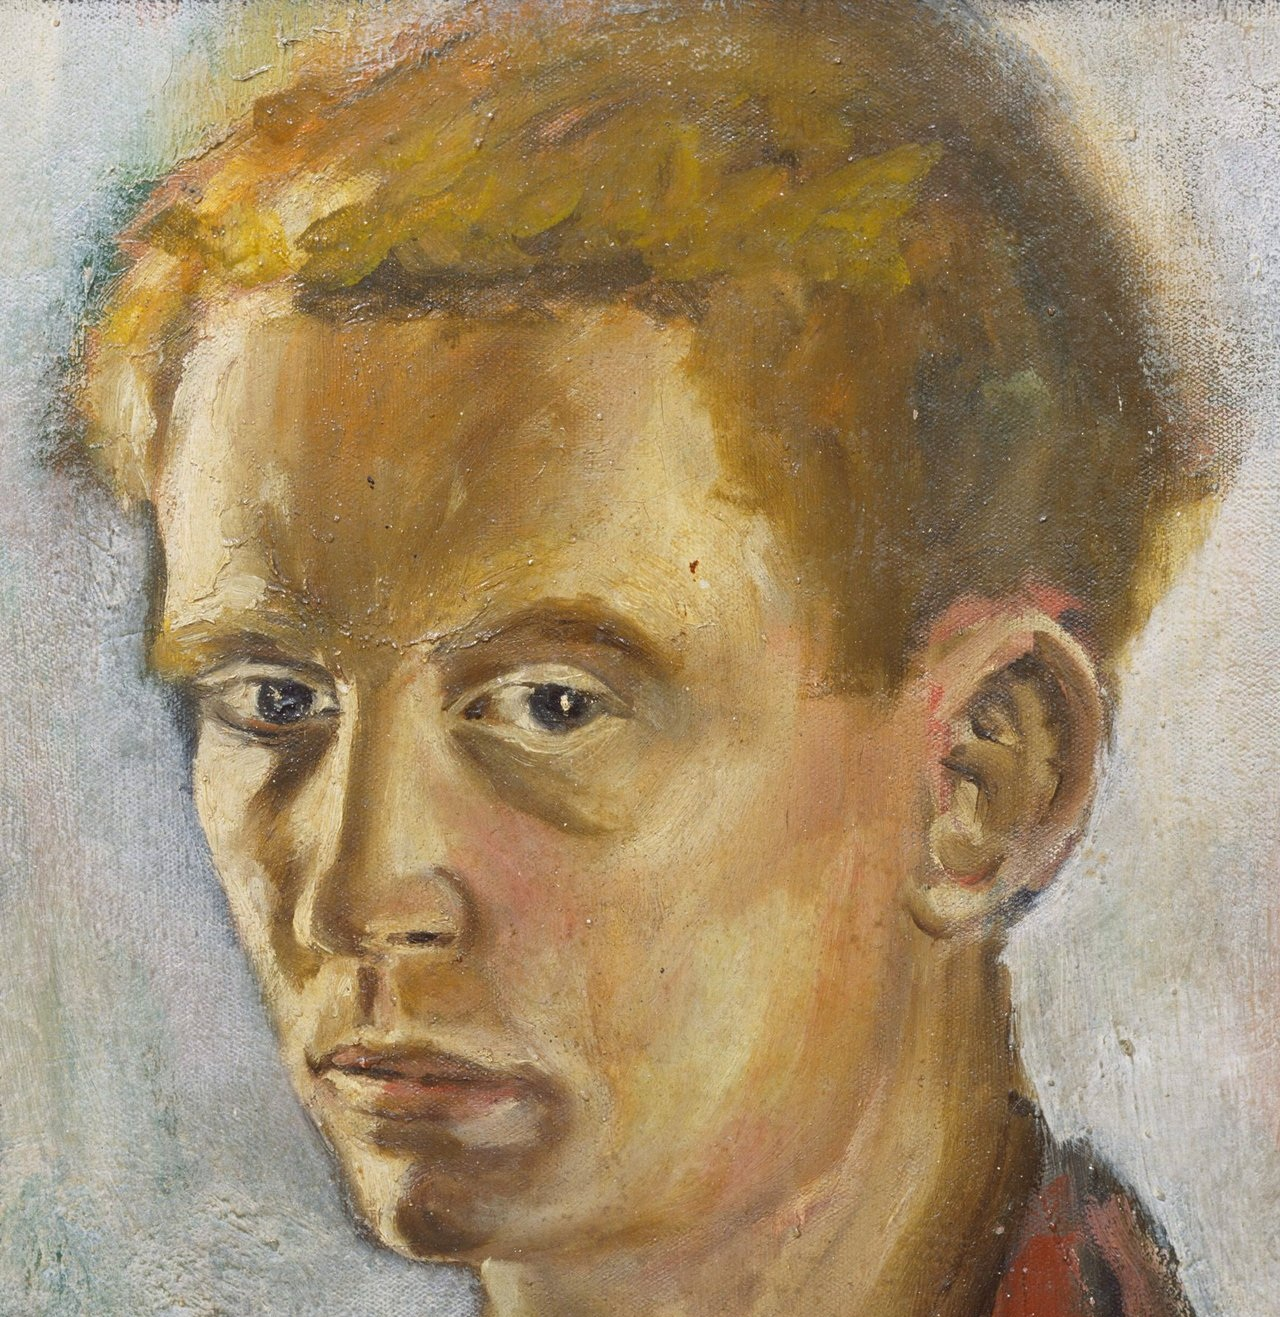 Brett Whiteley, Self Portrait at 16